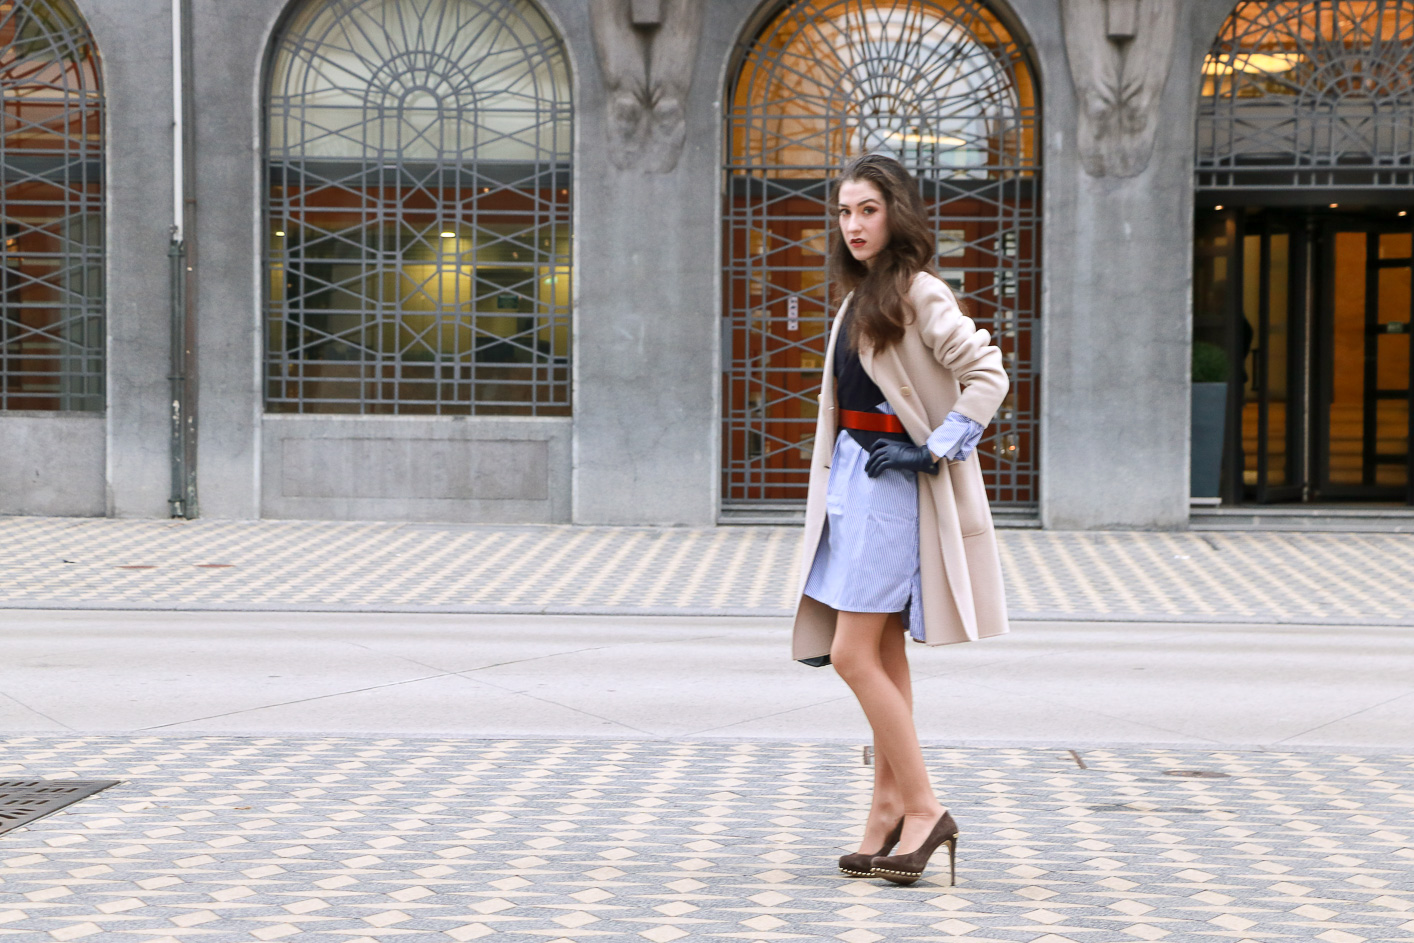 Fashion Blogger Veronika Lipar of Brunette from Wall Street sharing how to wear your boyfriend's shirt and wear it as a shirt dress